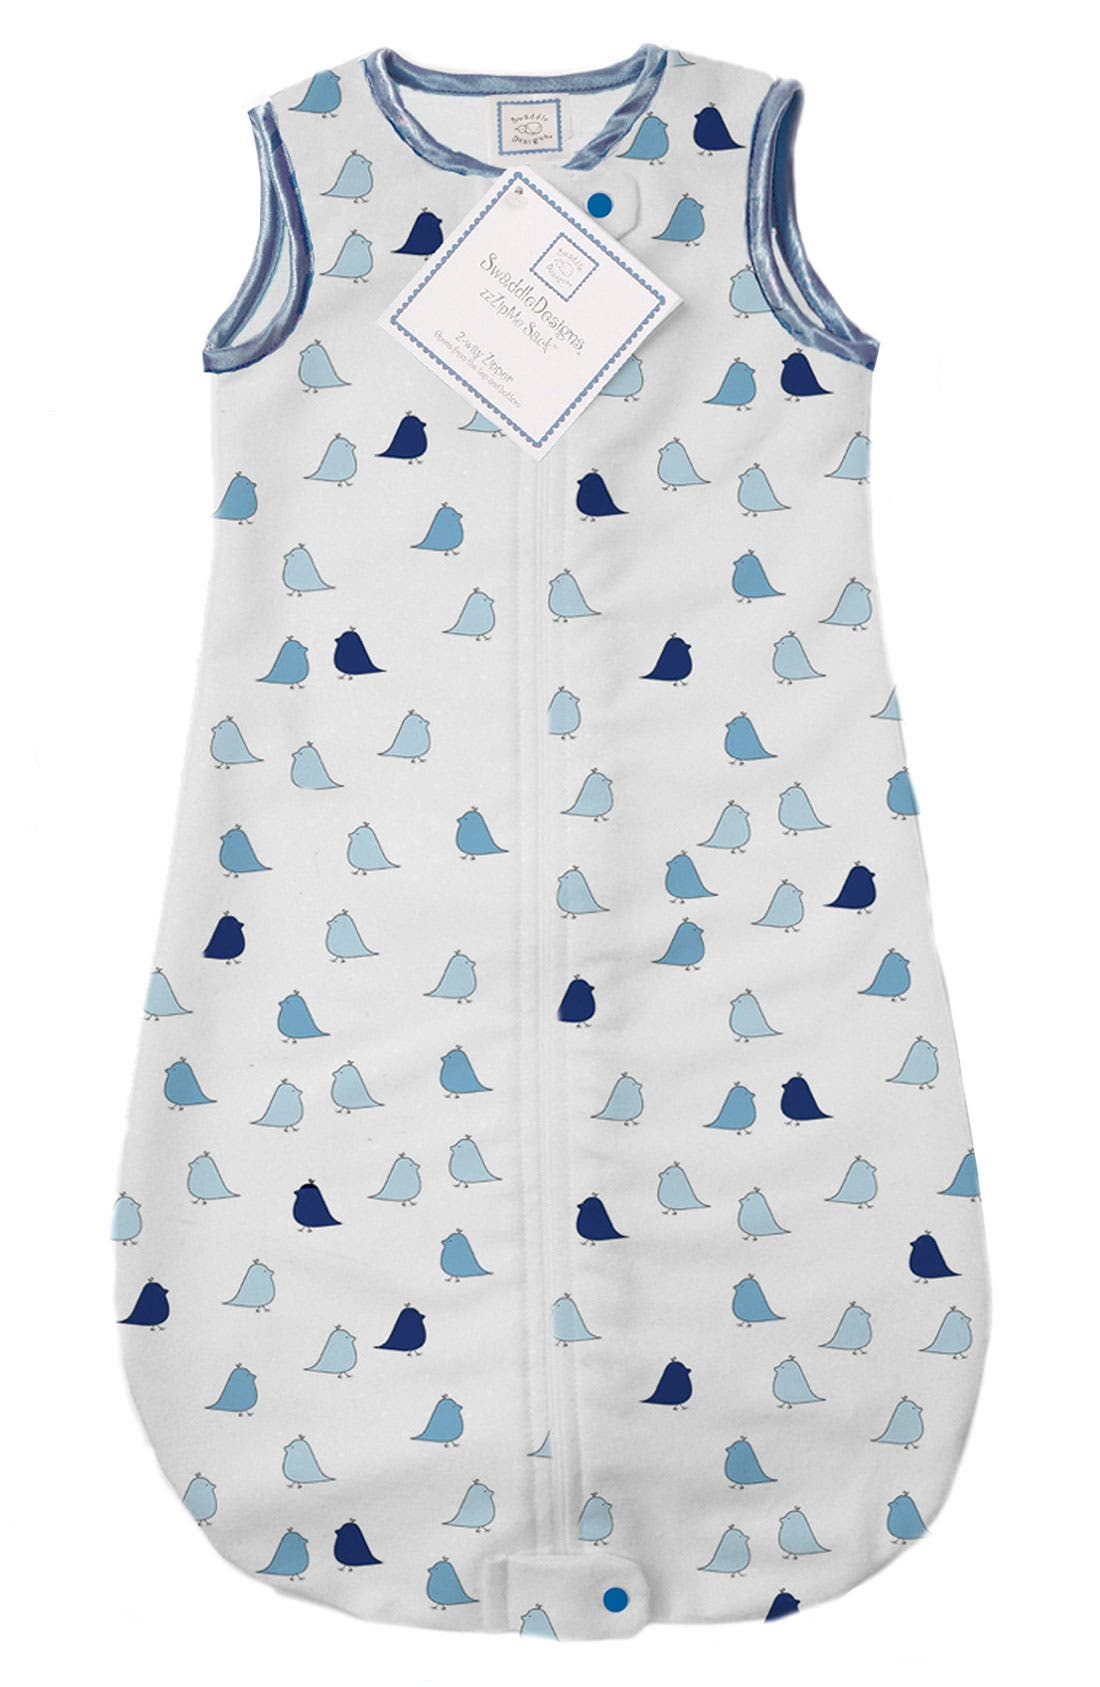 Main Image - Swaddle Designs 'zzZipme' Flannel Wearable Blanket (Baby)